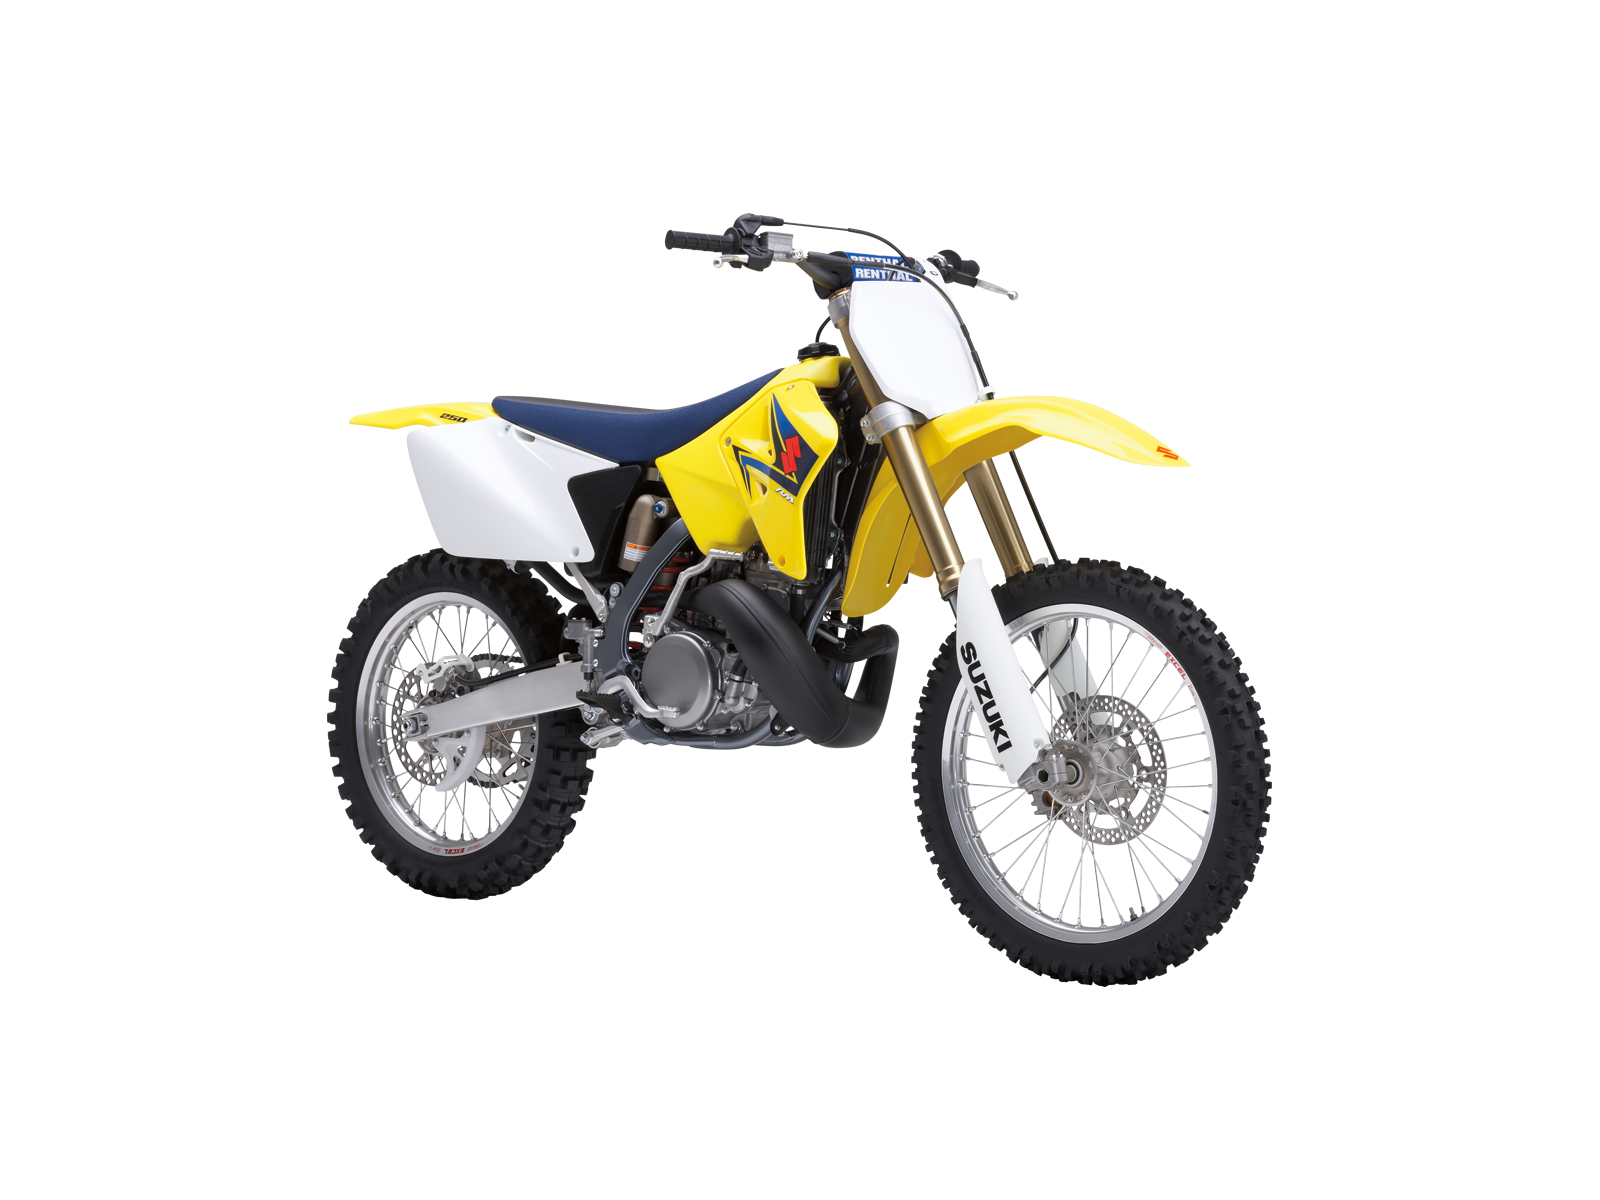 The 2008 Suzuki RM250 is just as competitive today as ever.